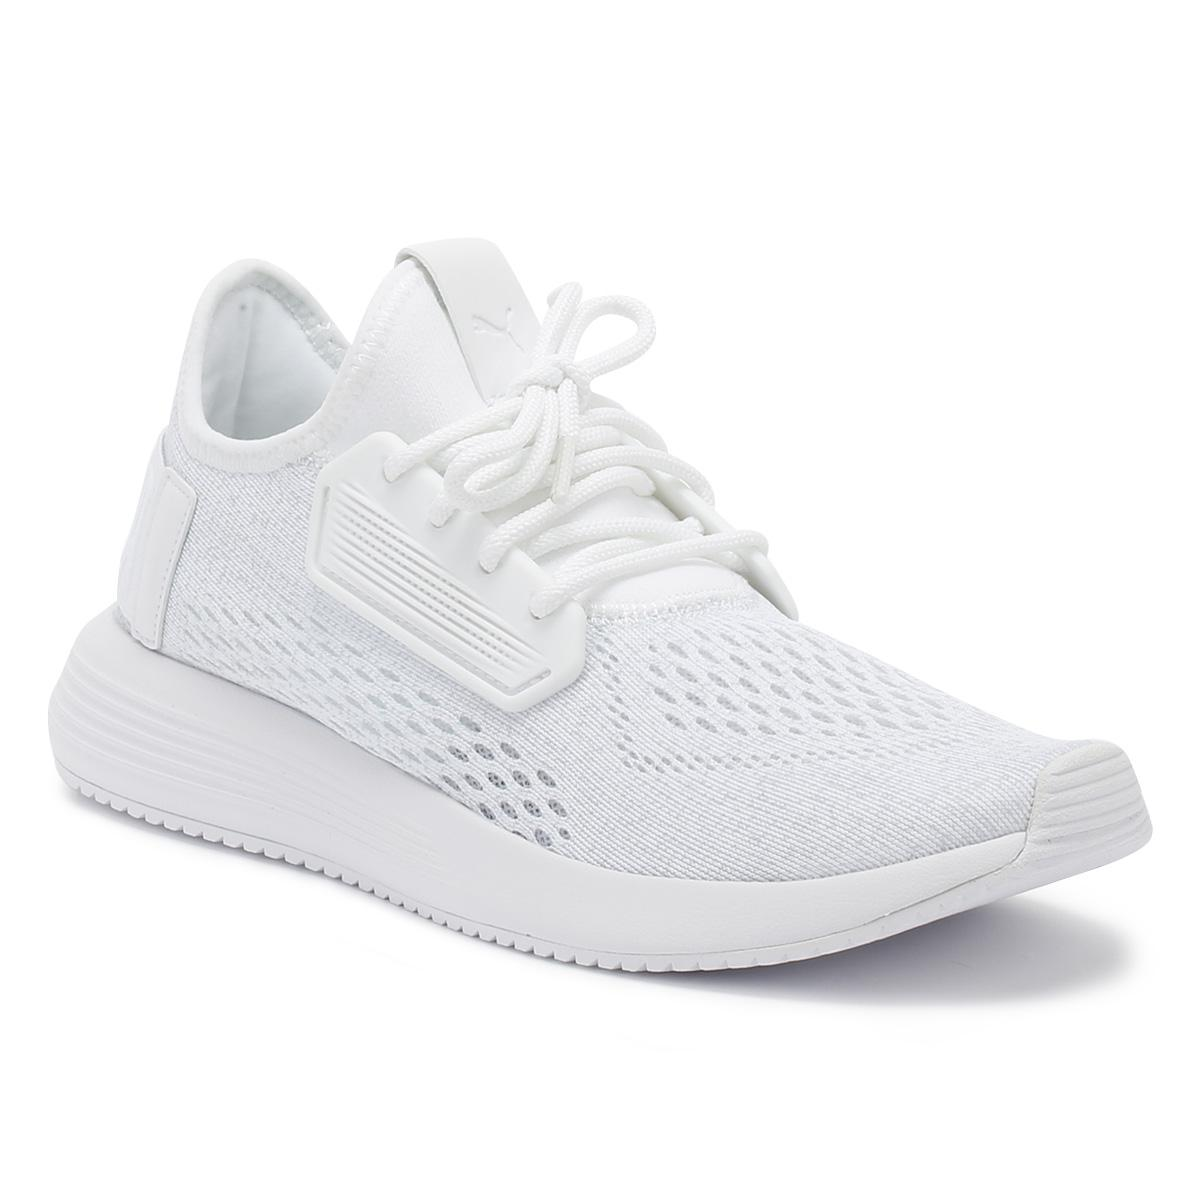 aa26102ed74f Lyst - PUMA Mens White Uprise Mesh Trainers in White for Men